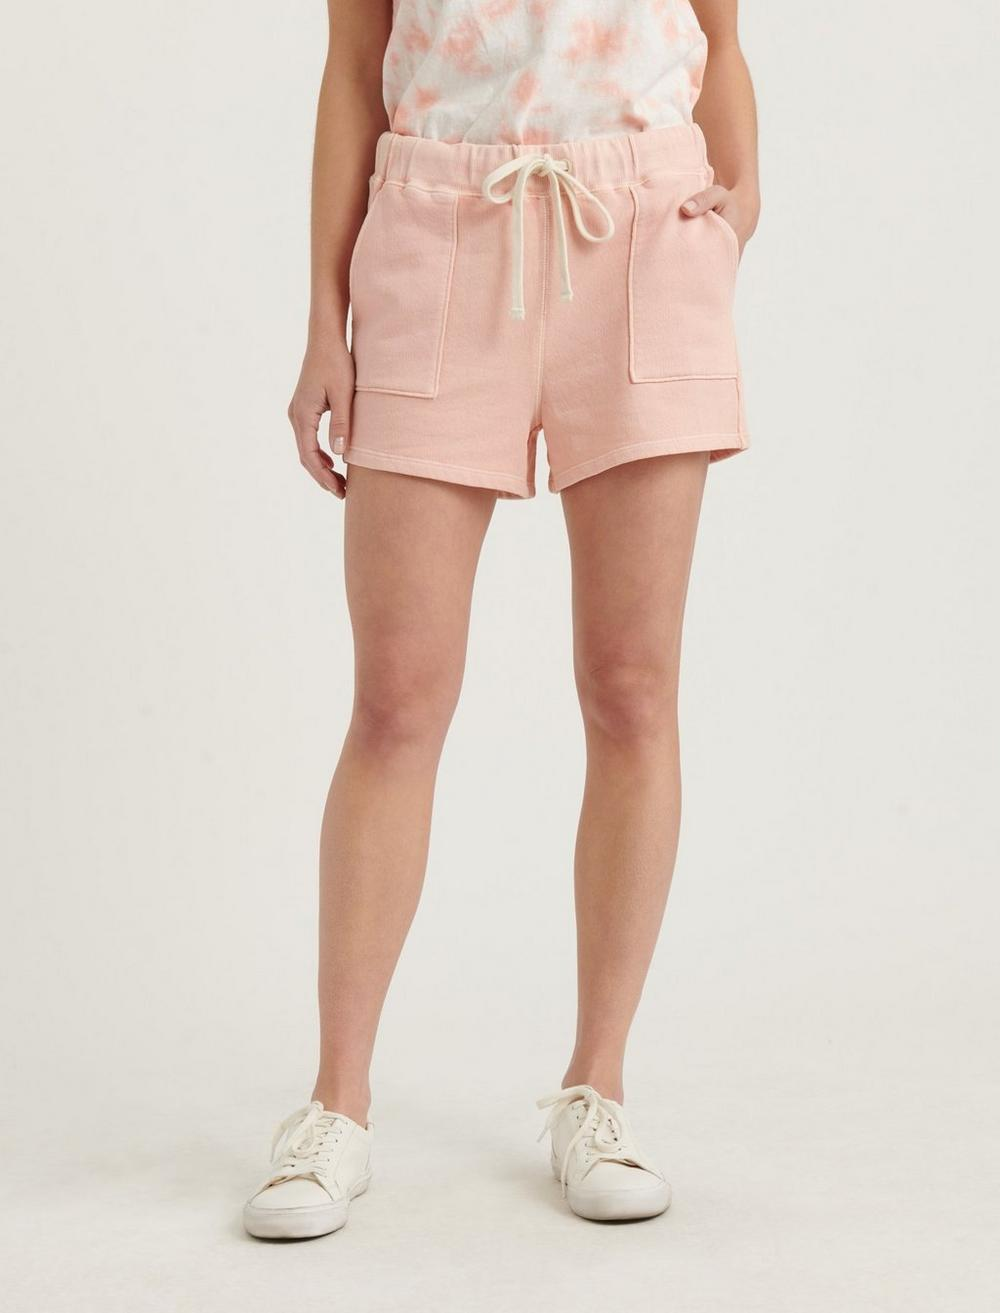 PATCH POCKET TERRY SHORTS, image 5